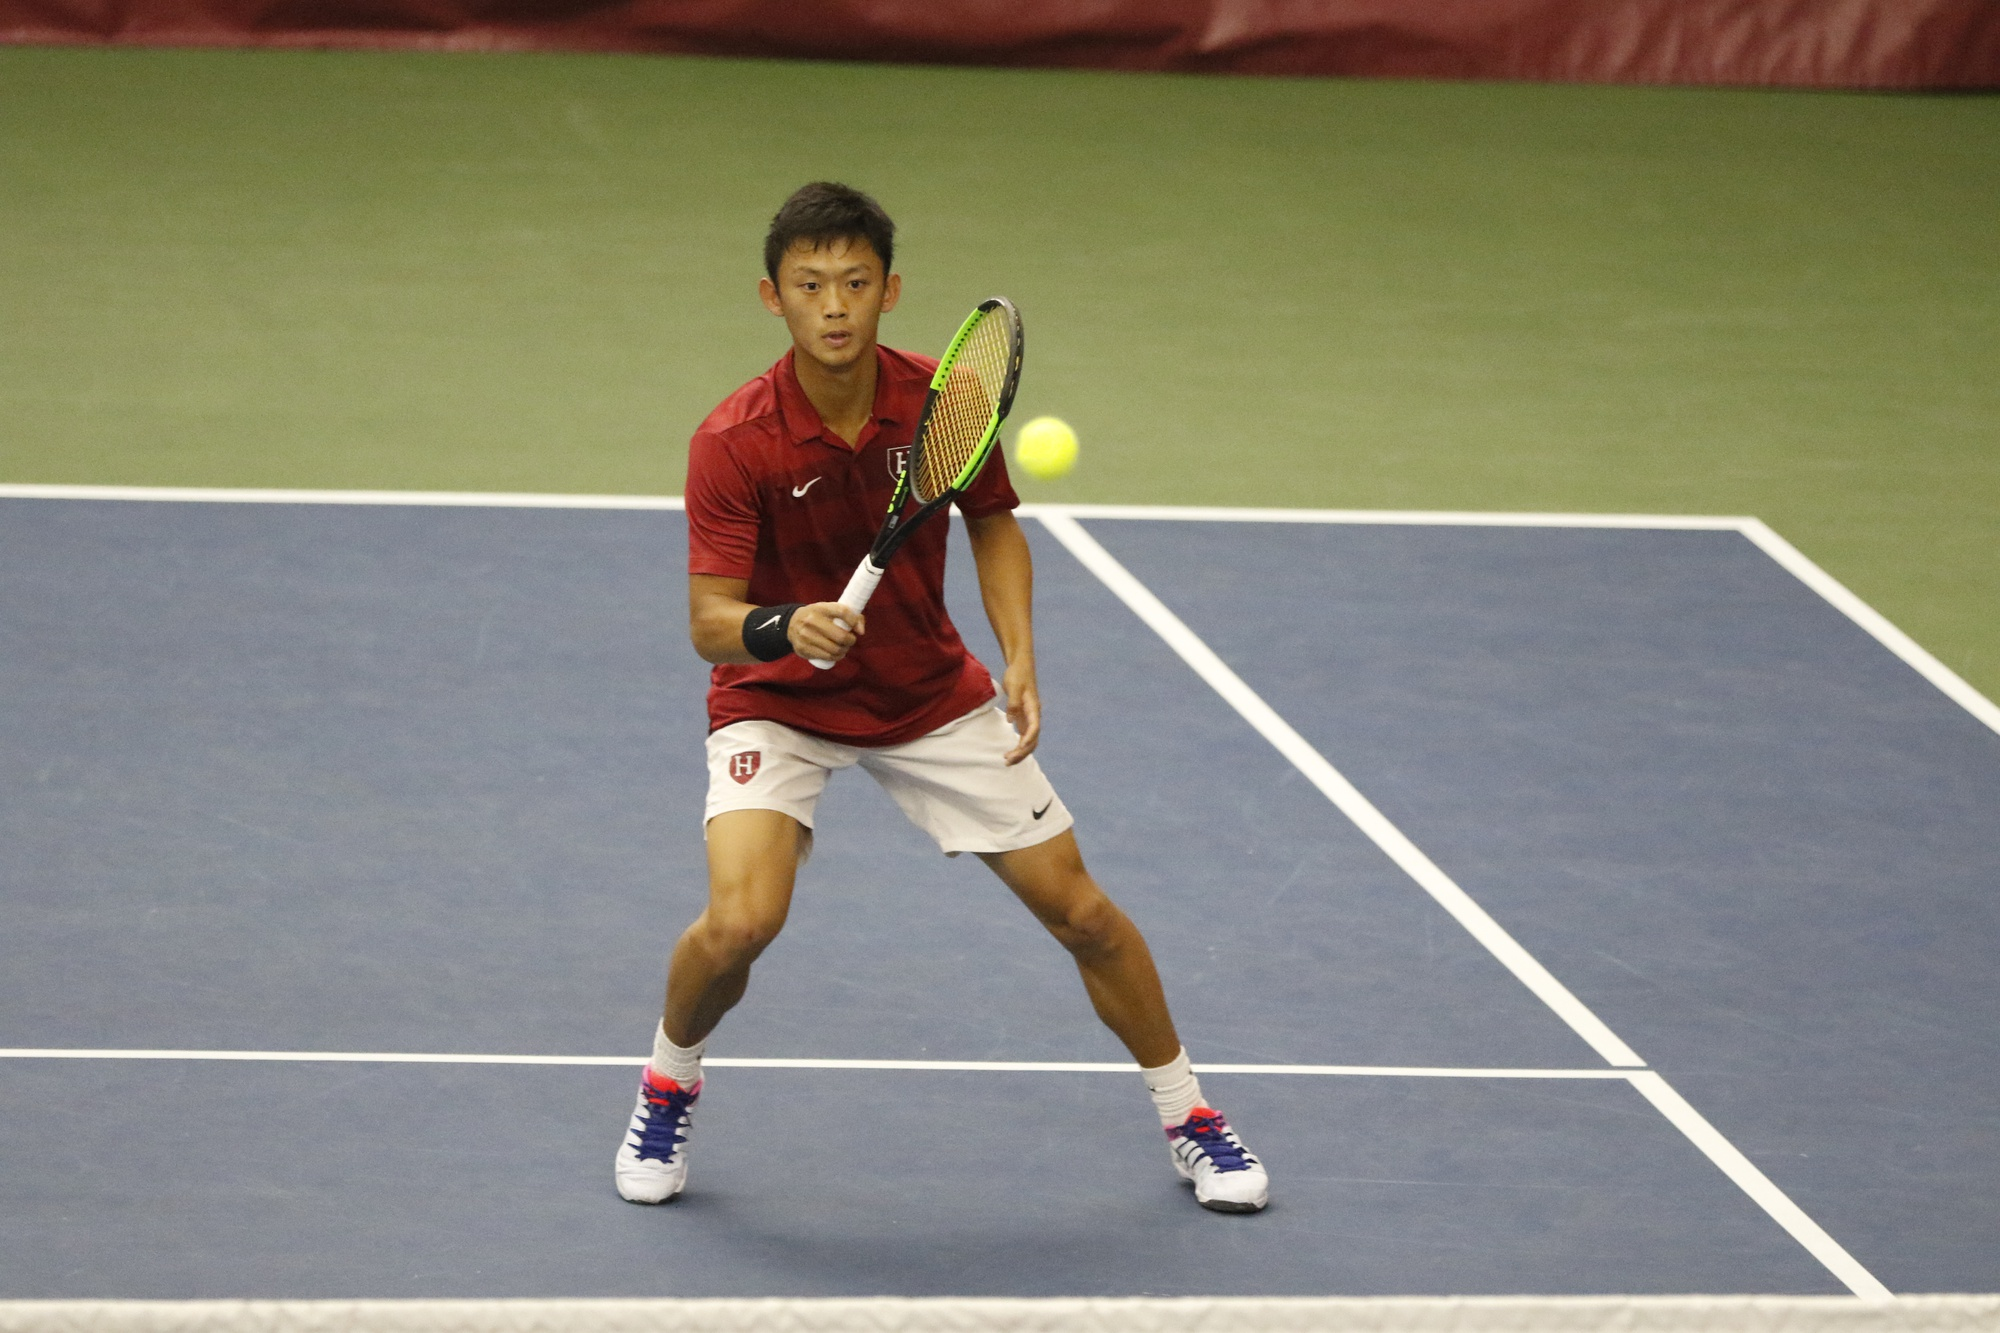 Since the tennis season really gets into high gear in the spring, the Crimson treats the fall as a chance to perfect its play.